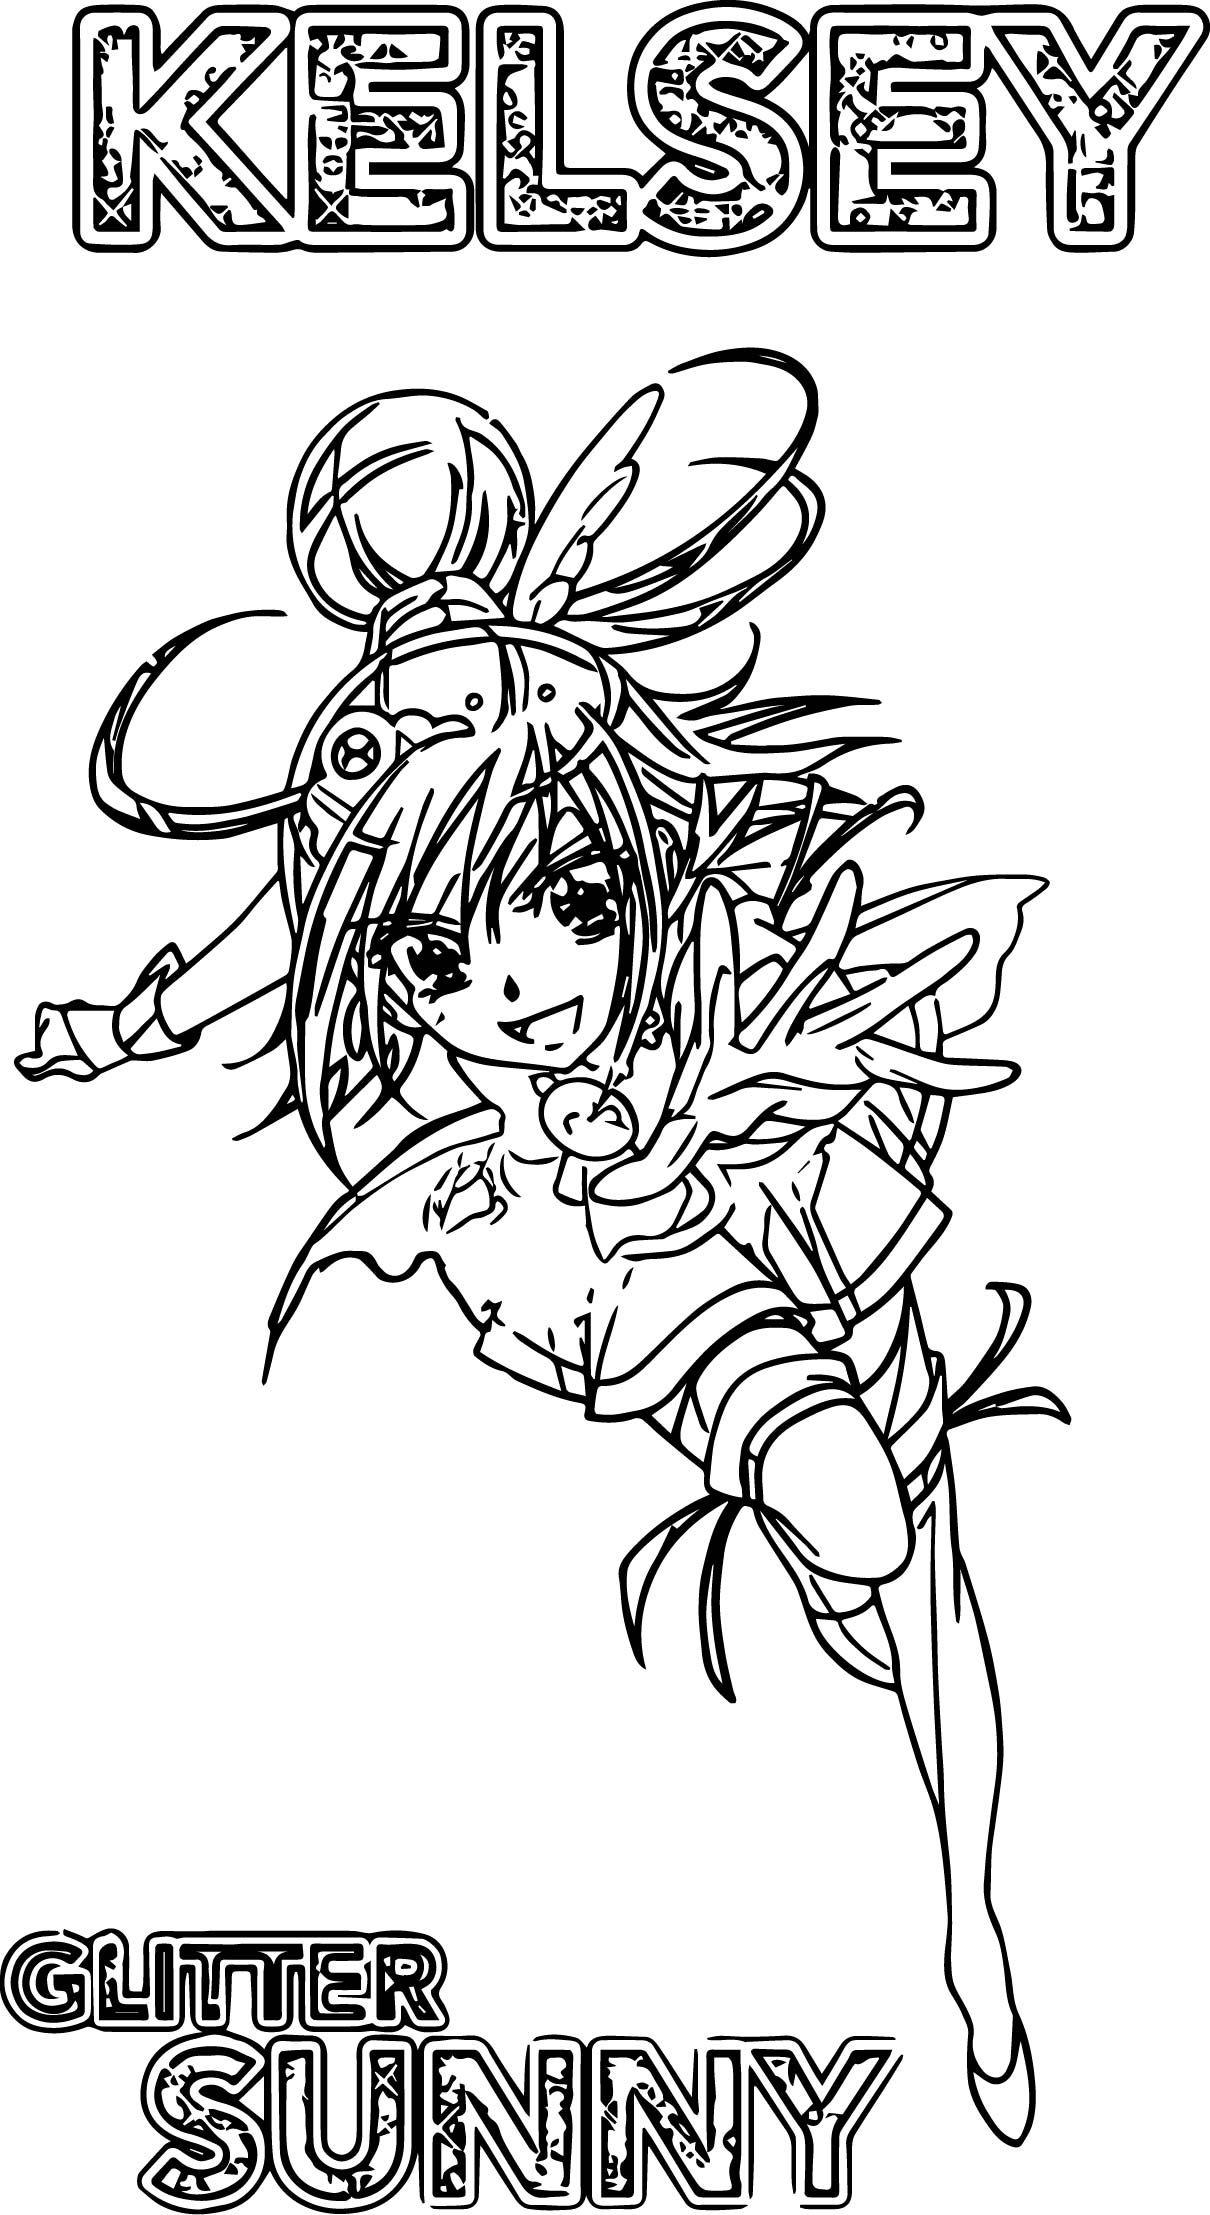 Awesome Kelsey Glitter Force Sunny Coloring Page Glitter Force Coloring Pages Coloring Pages For Boys